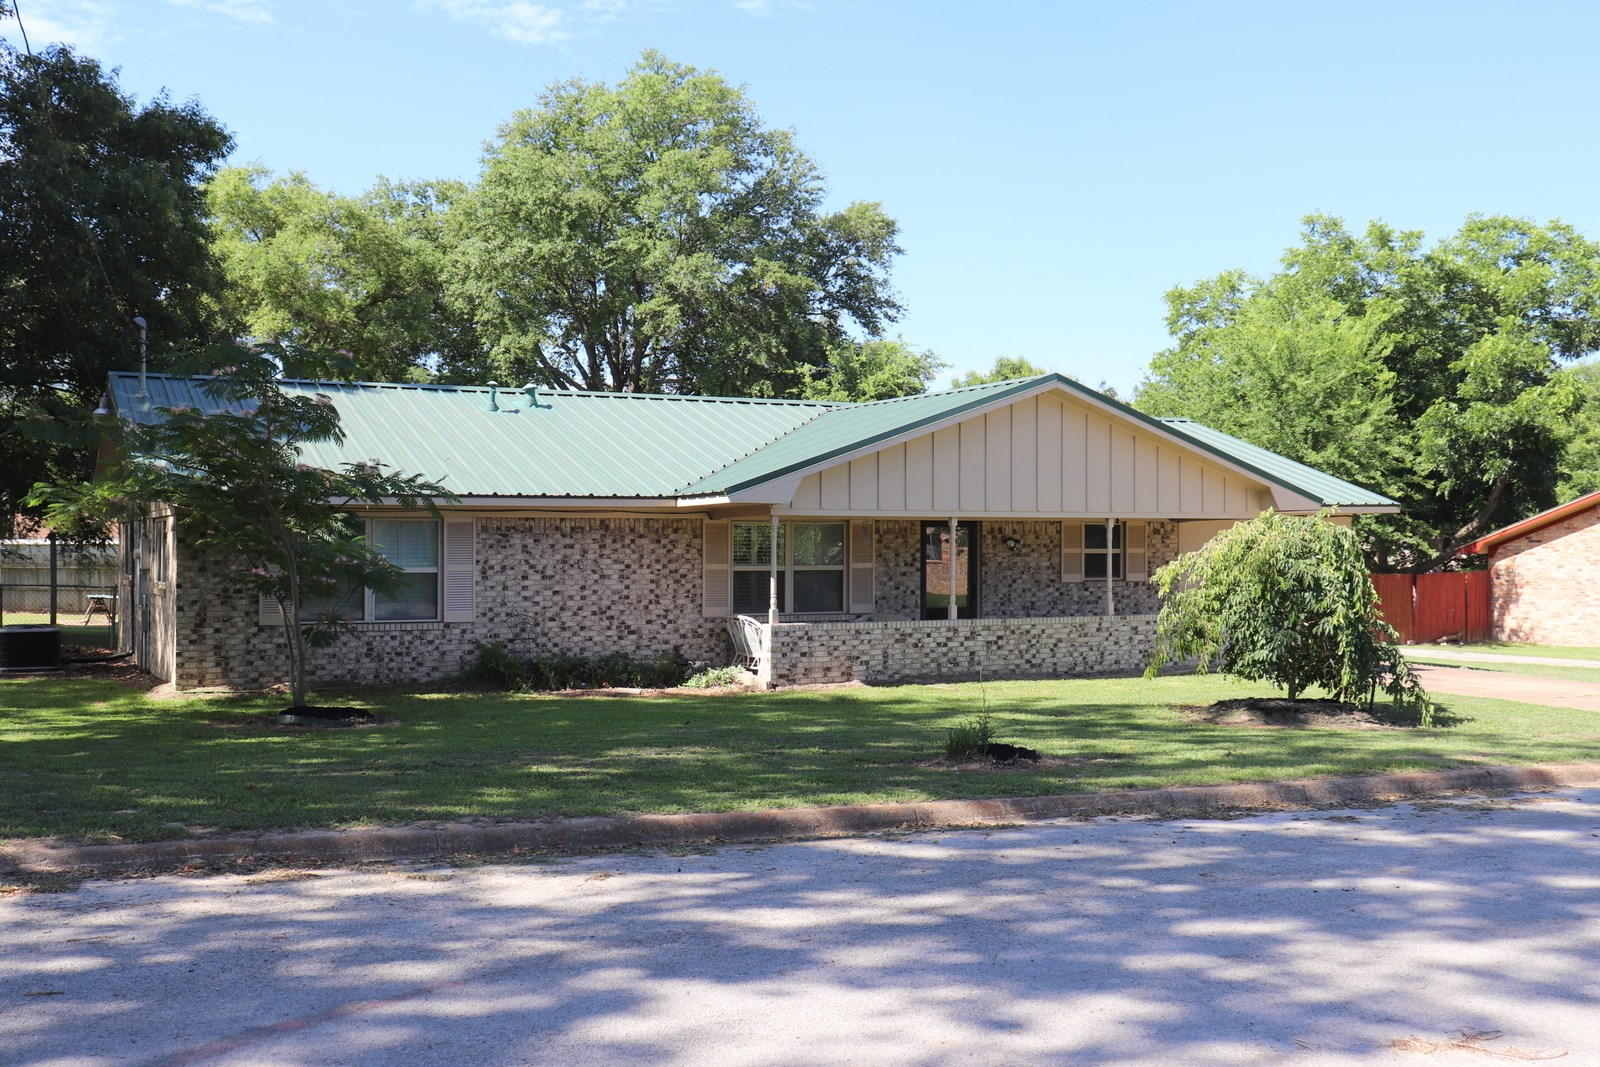 MINEOLA TEXAS HOME FOR SALE - INSULATED WORK SHOP - EAST TX